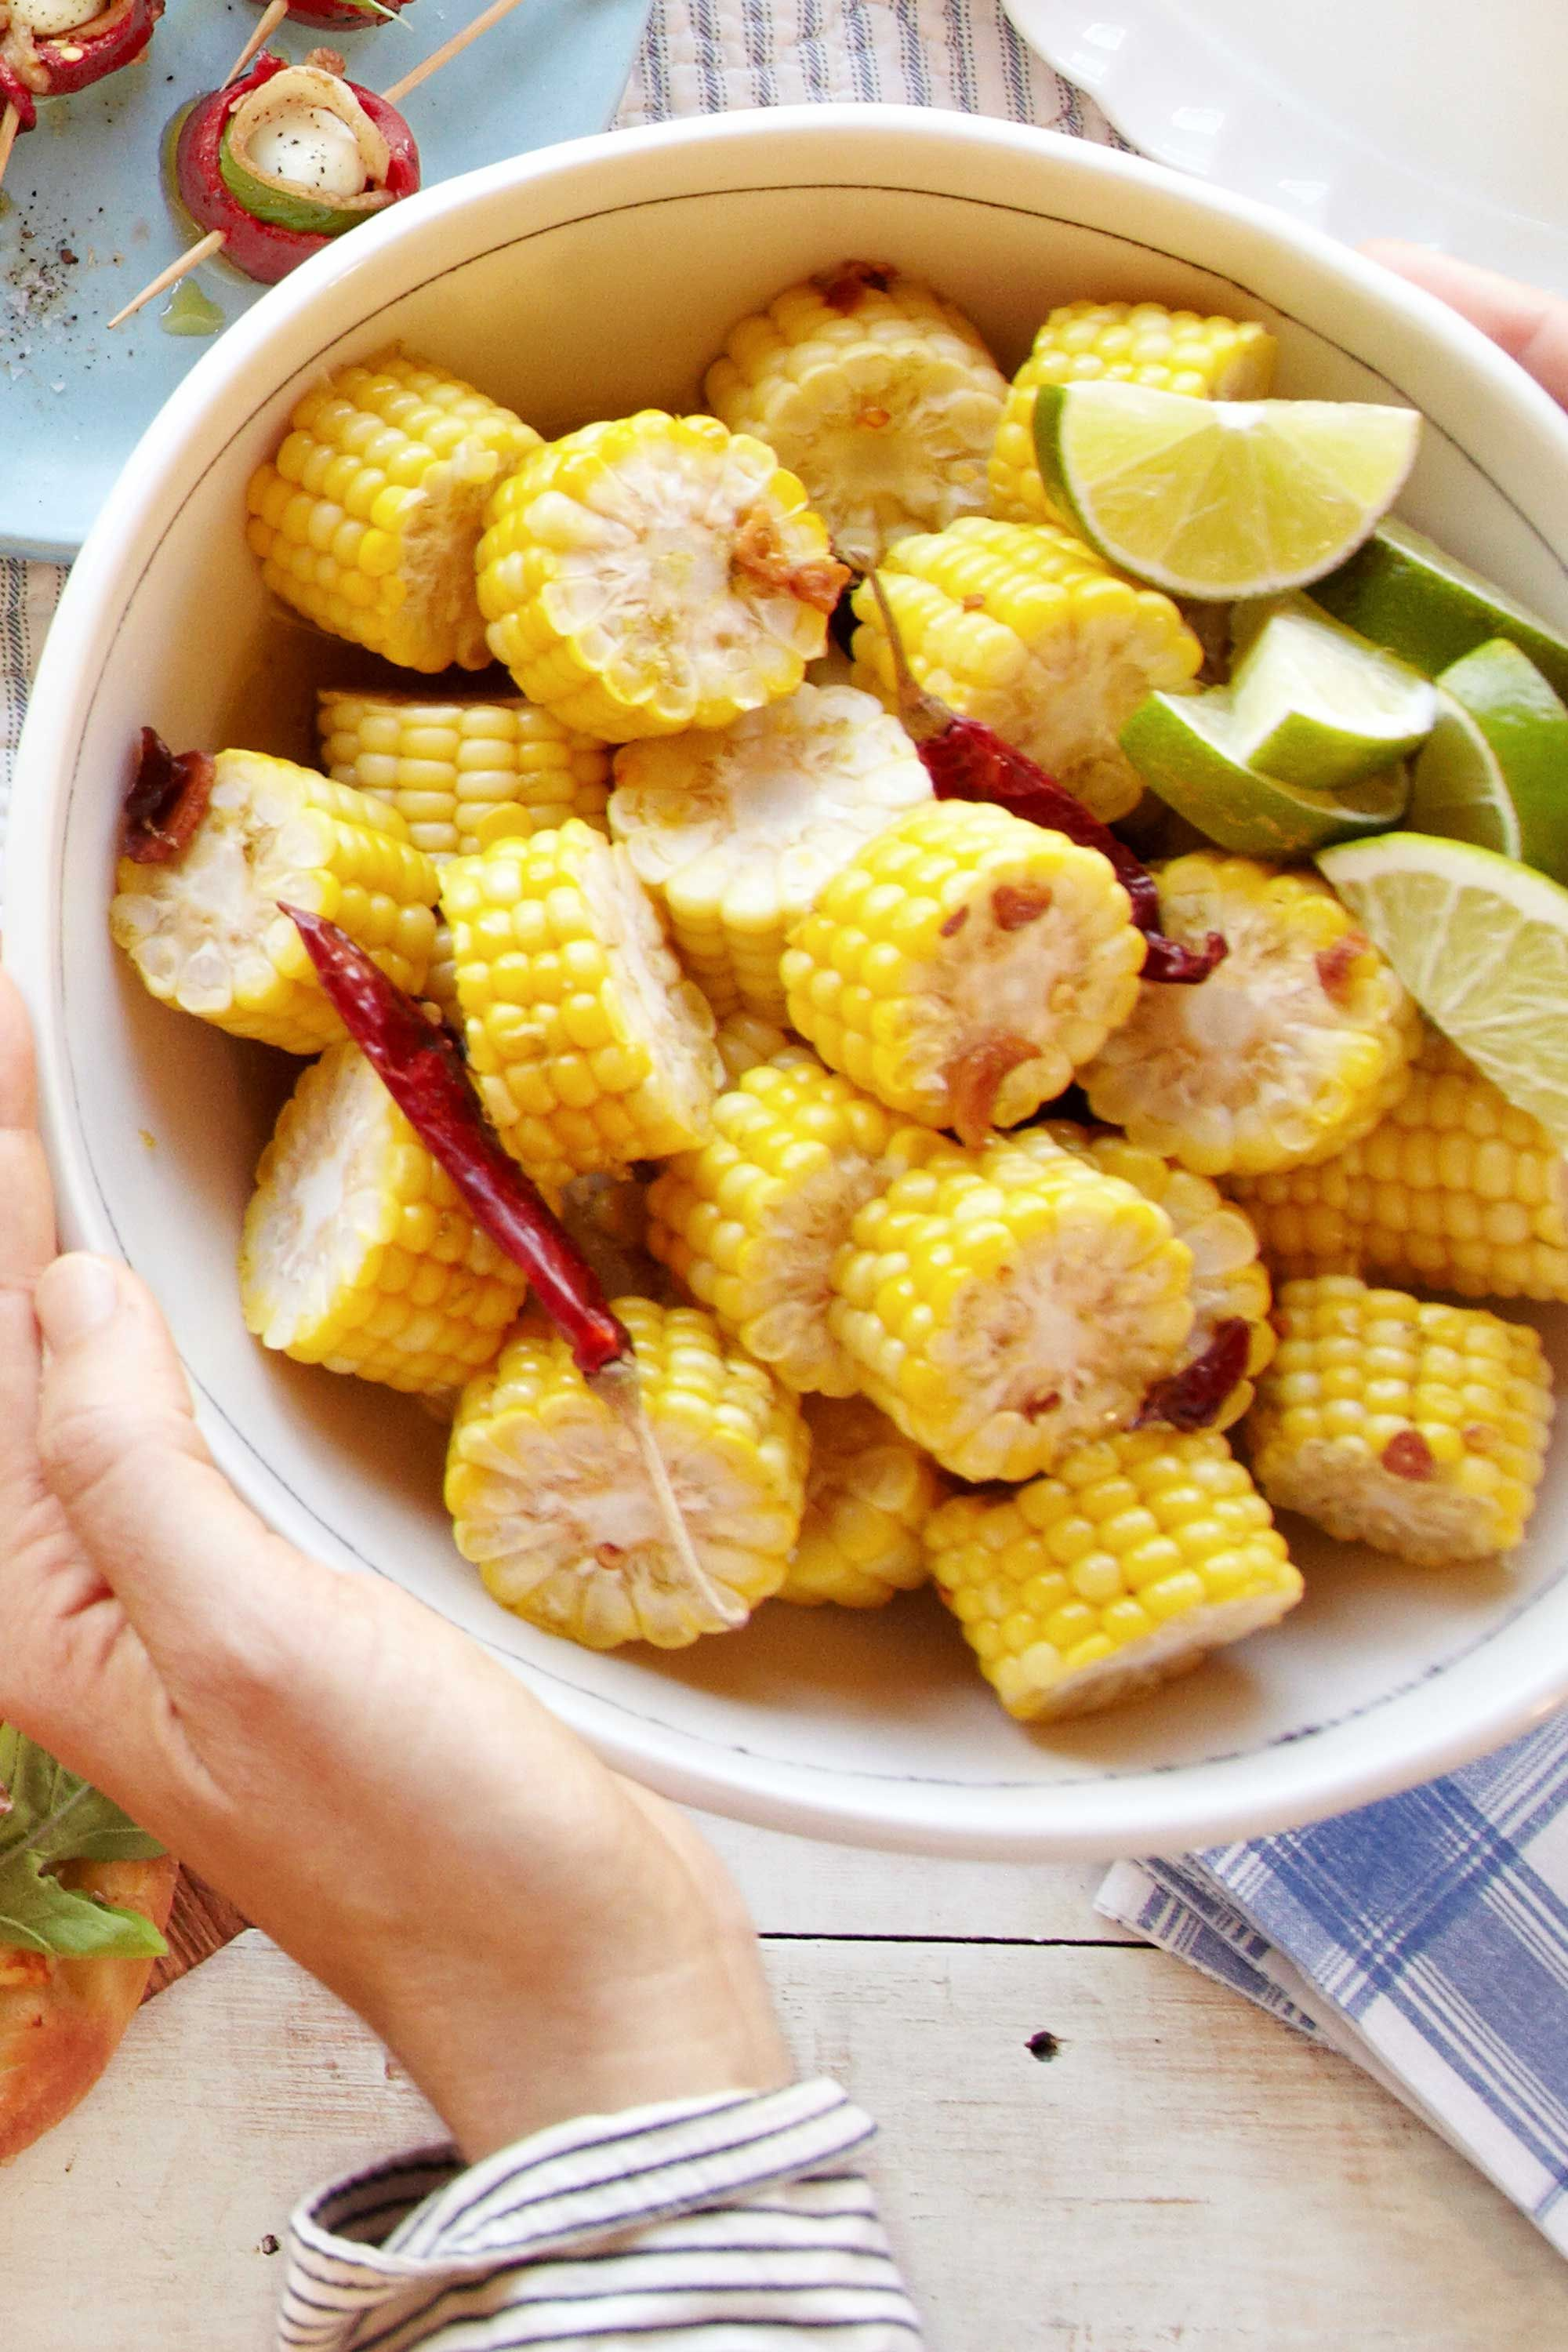 78 summer picnic recipes easy food ideas for a summer picnic forumfinder Choice Image